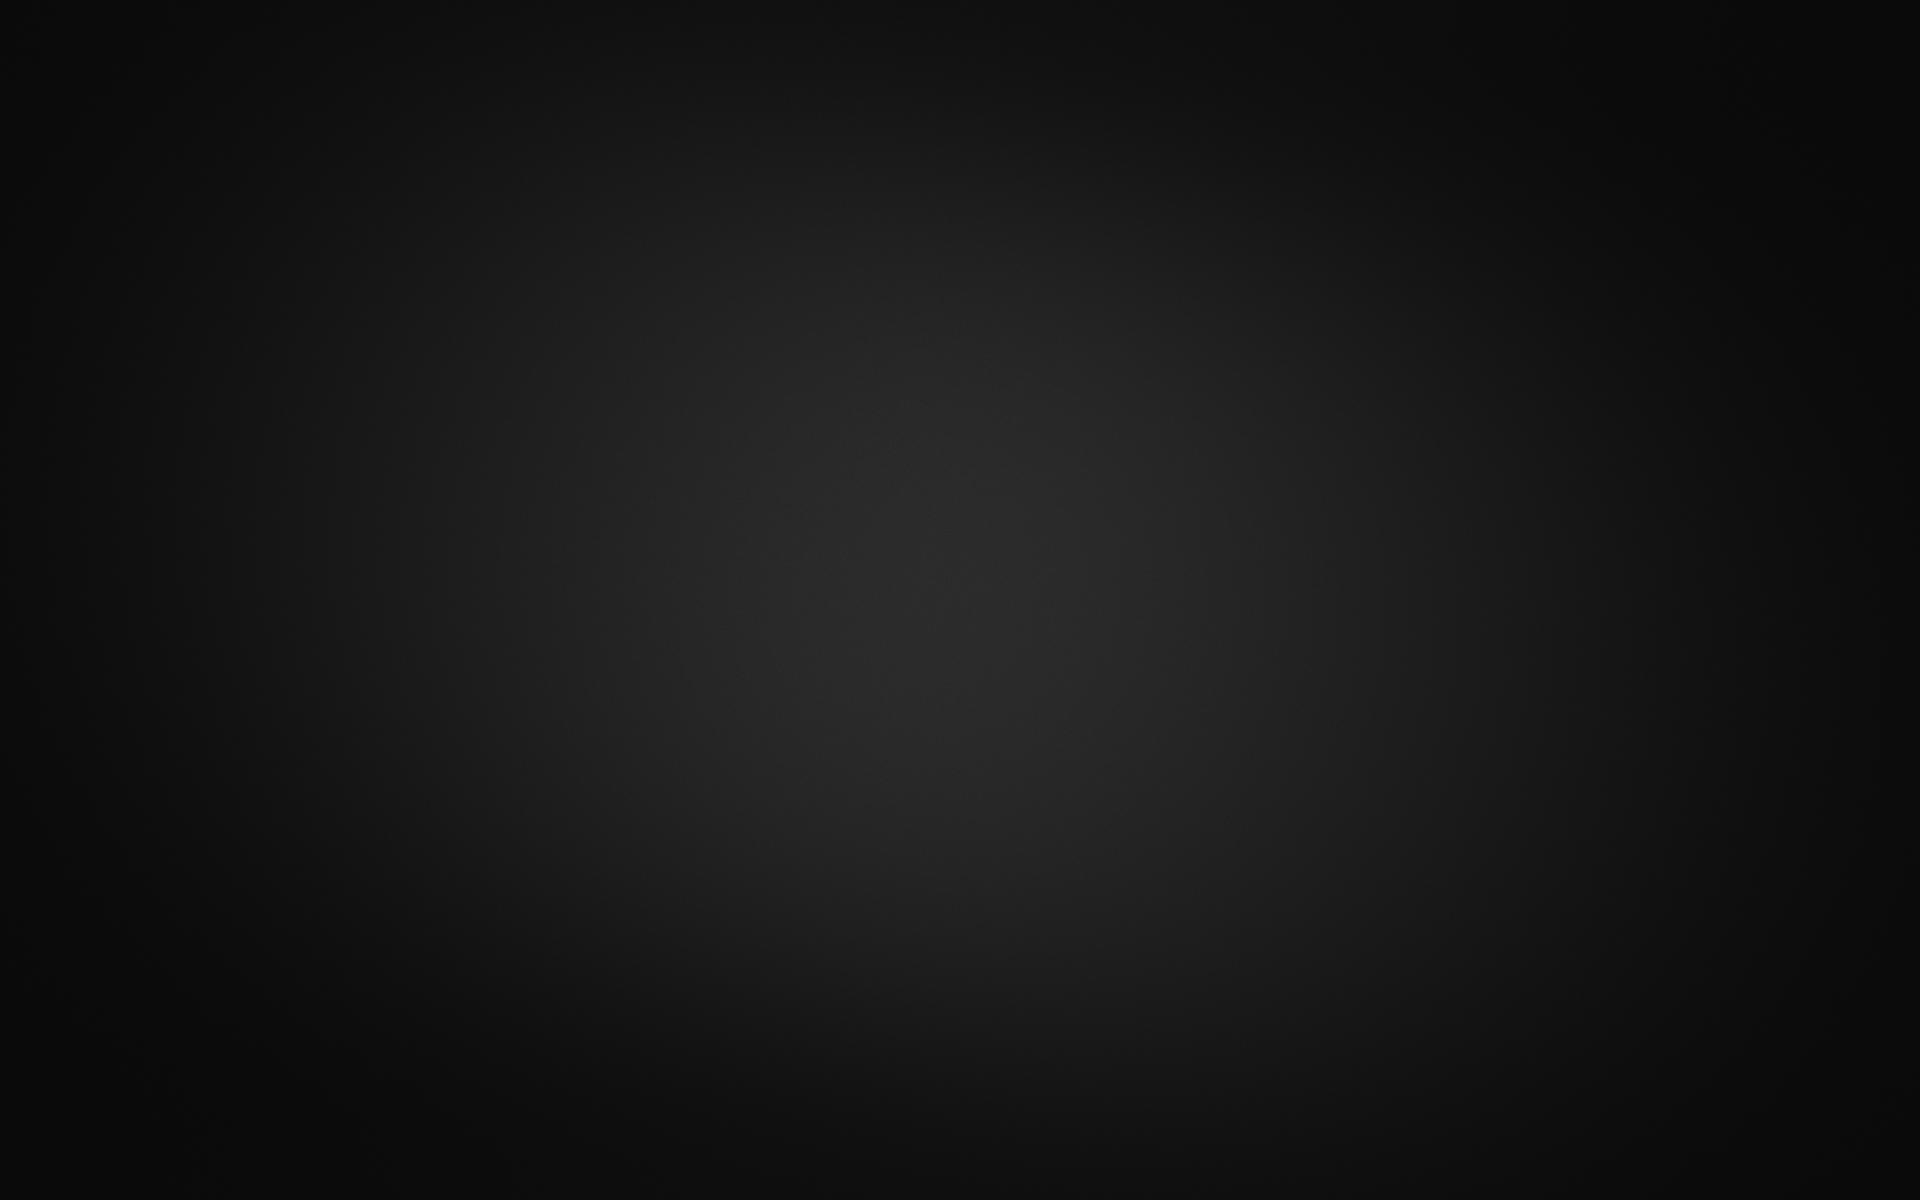 Smooth Black And Black Noise By Delafine On Deviantart HD Wallpapers Download Free Images Wallpaper [1000image.com]